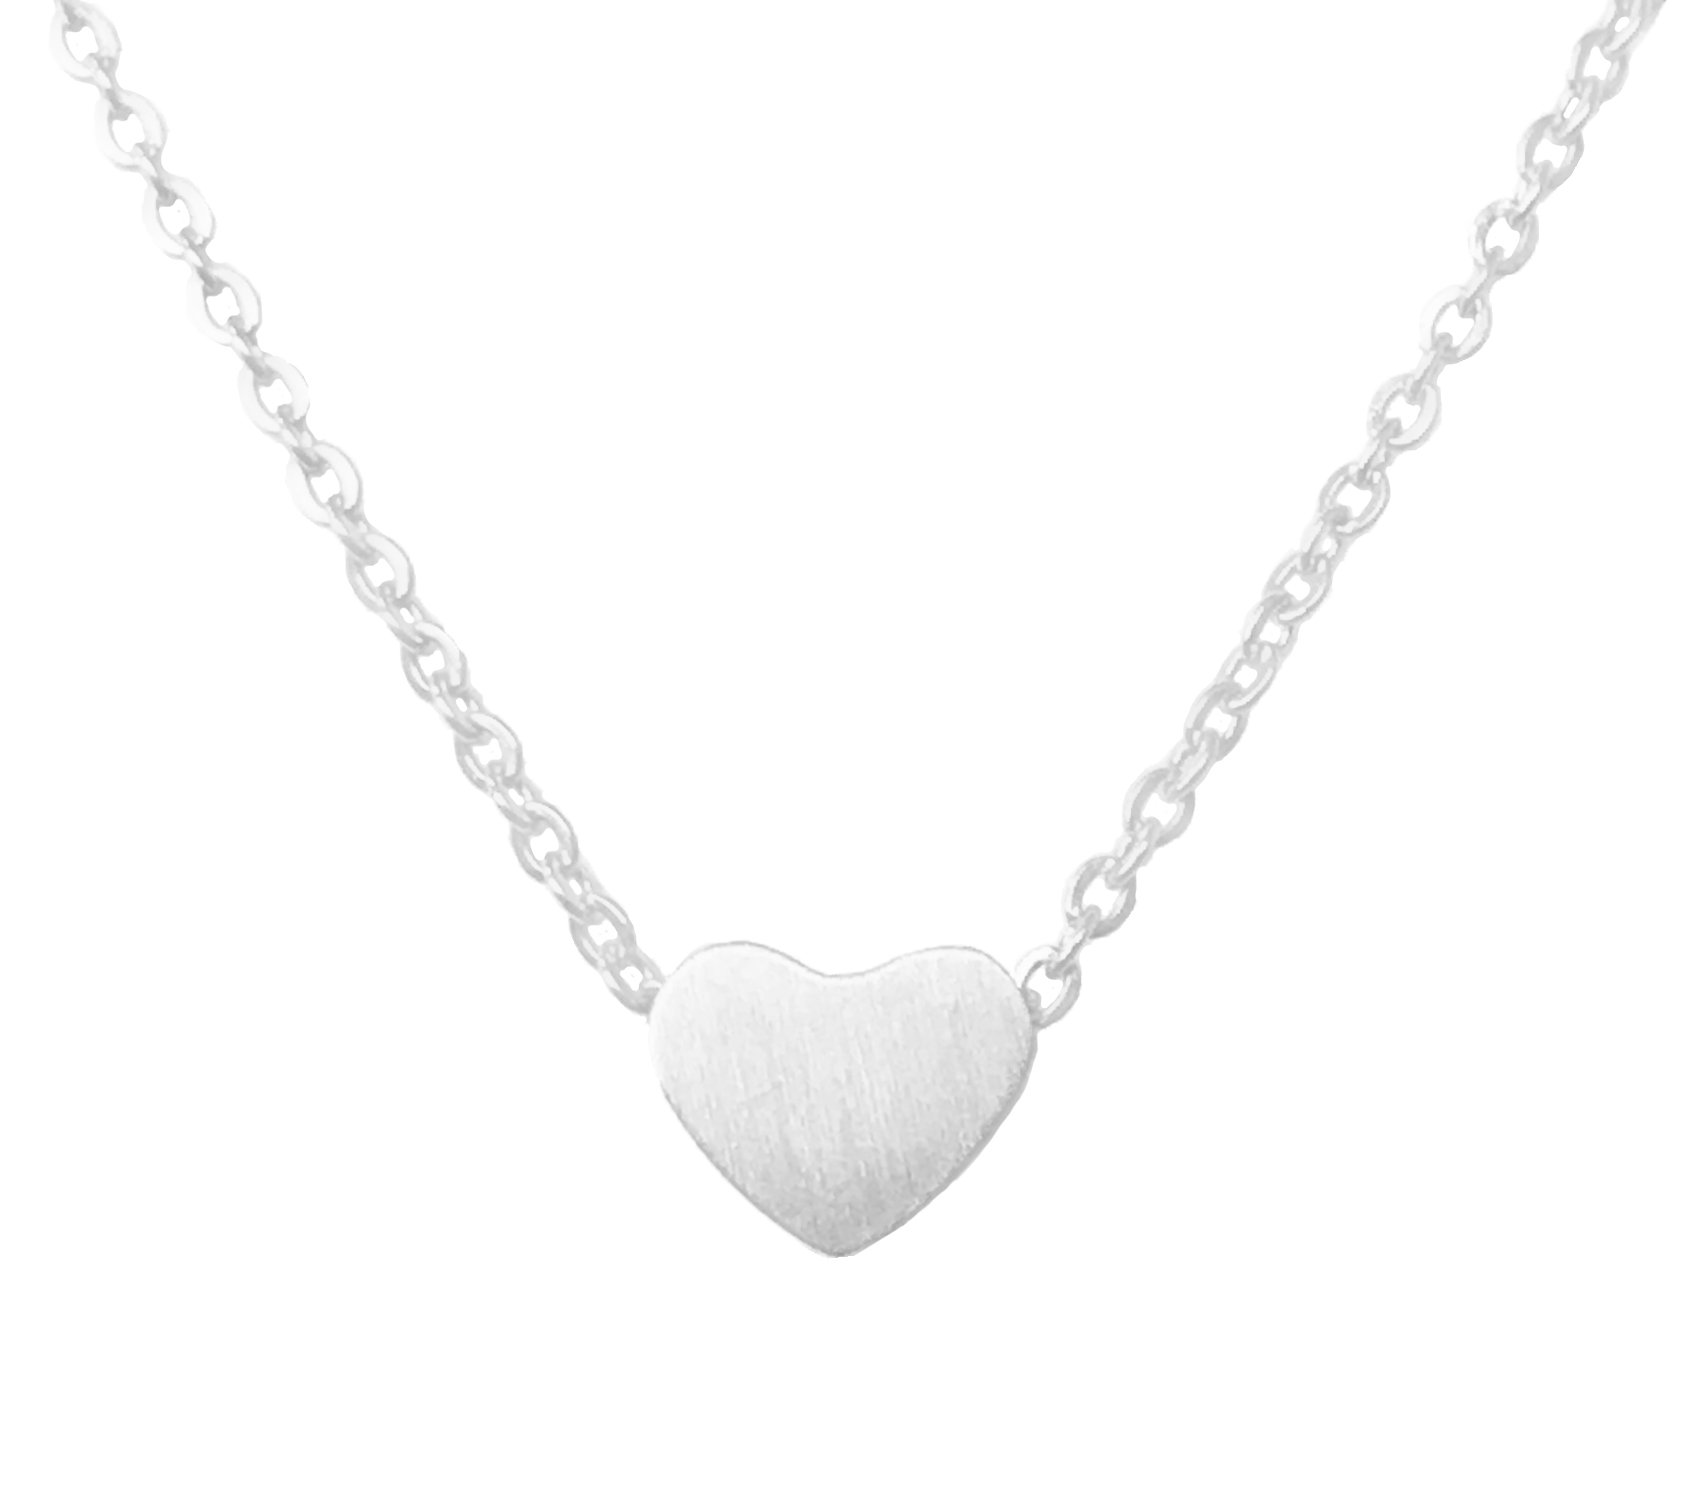 Altitude Boutique Simple Heart Necklace for Her, Pendant Love Choker or Long Style (Silver)